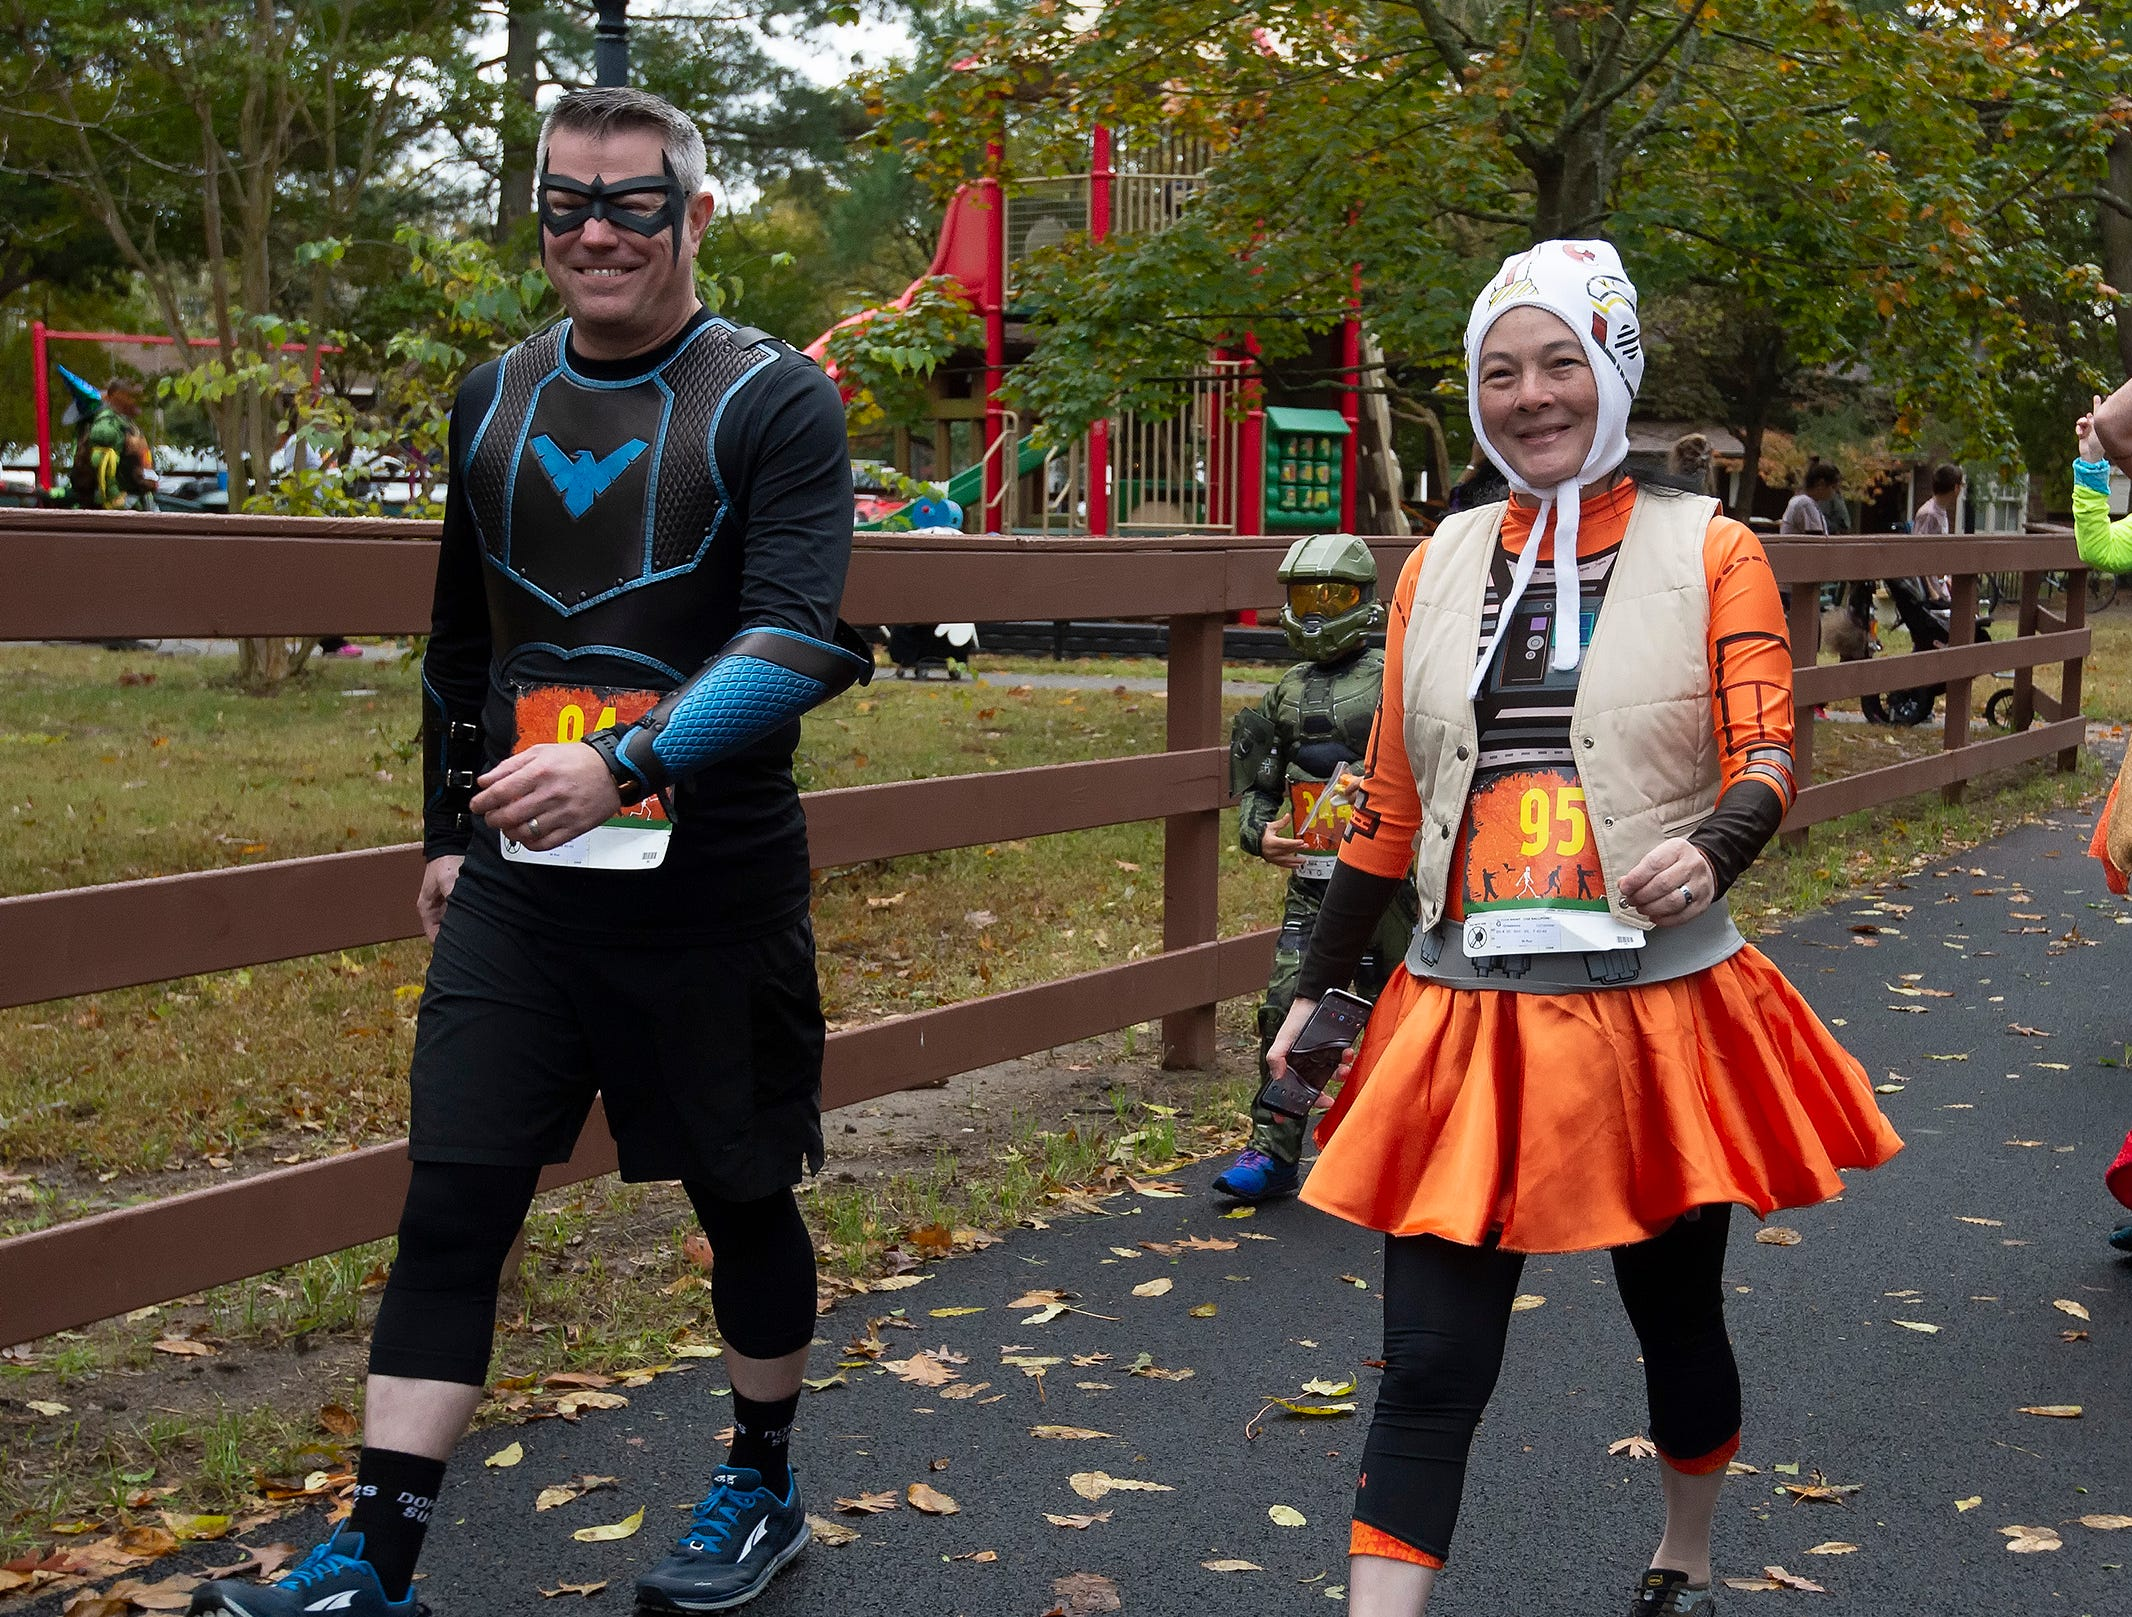 29th Annual Seawitch Fall 5k Classic in Rehoboth Beach.